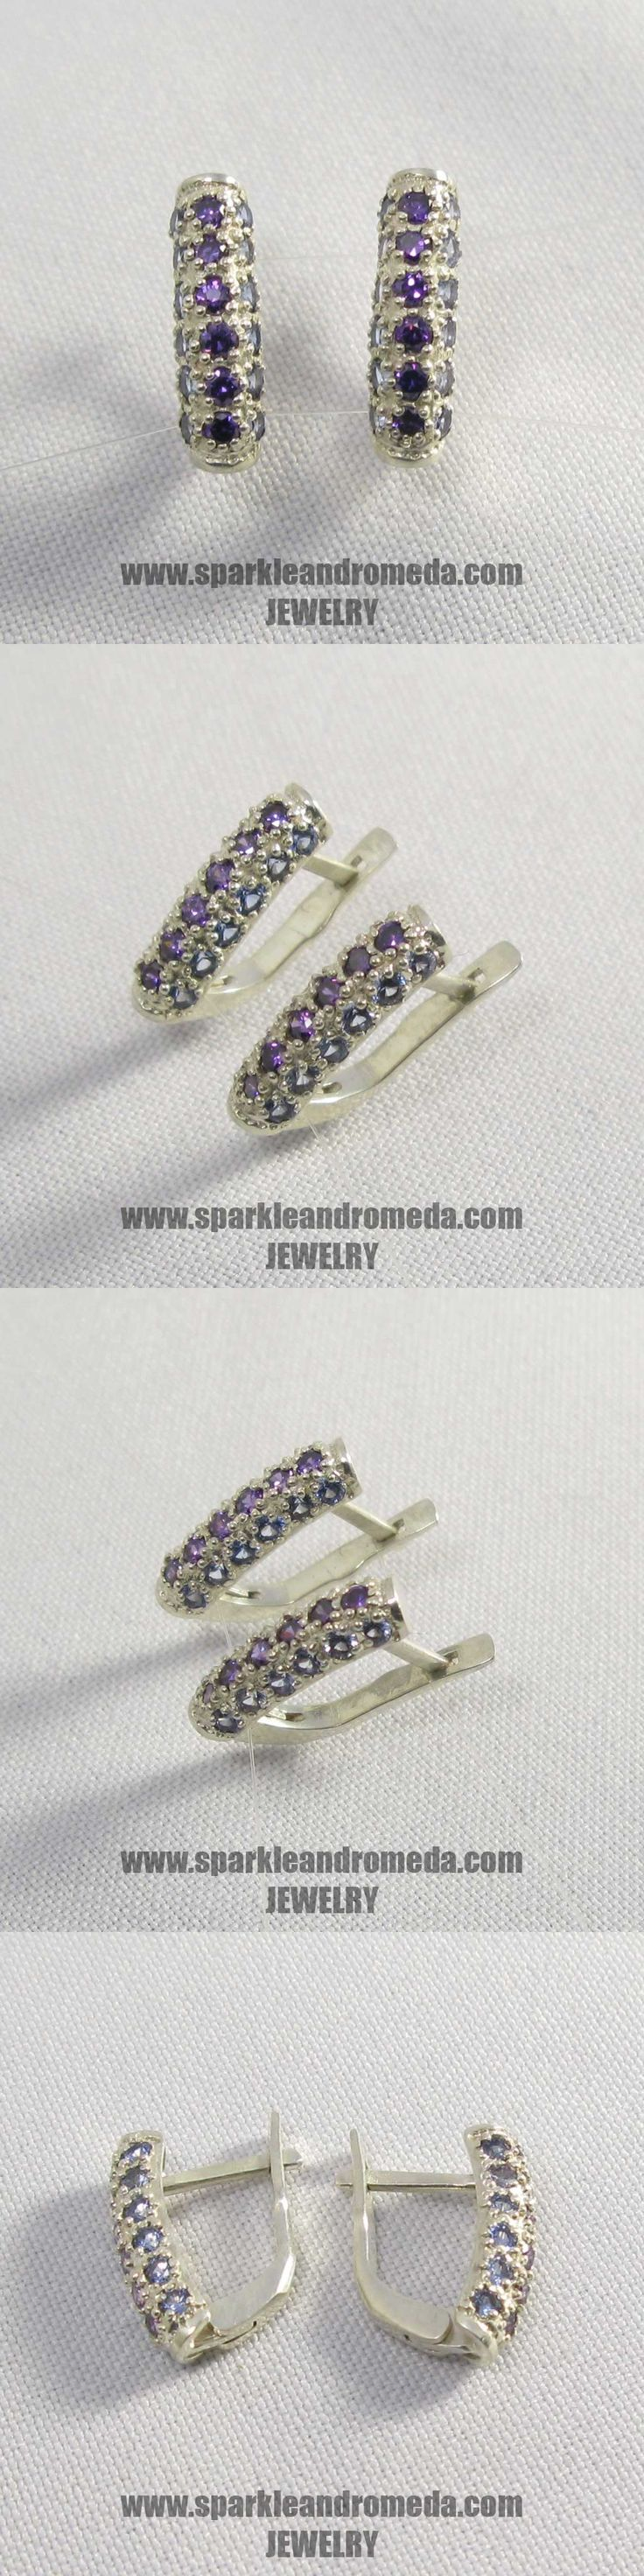 Sterling 925 silver earrings with 36 round 2 mm violet amethyst color and blue aquamarine color cubic zirconia gemstones.